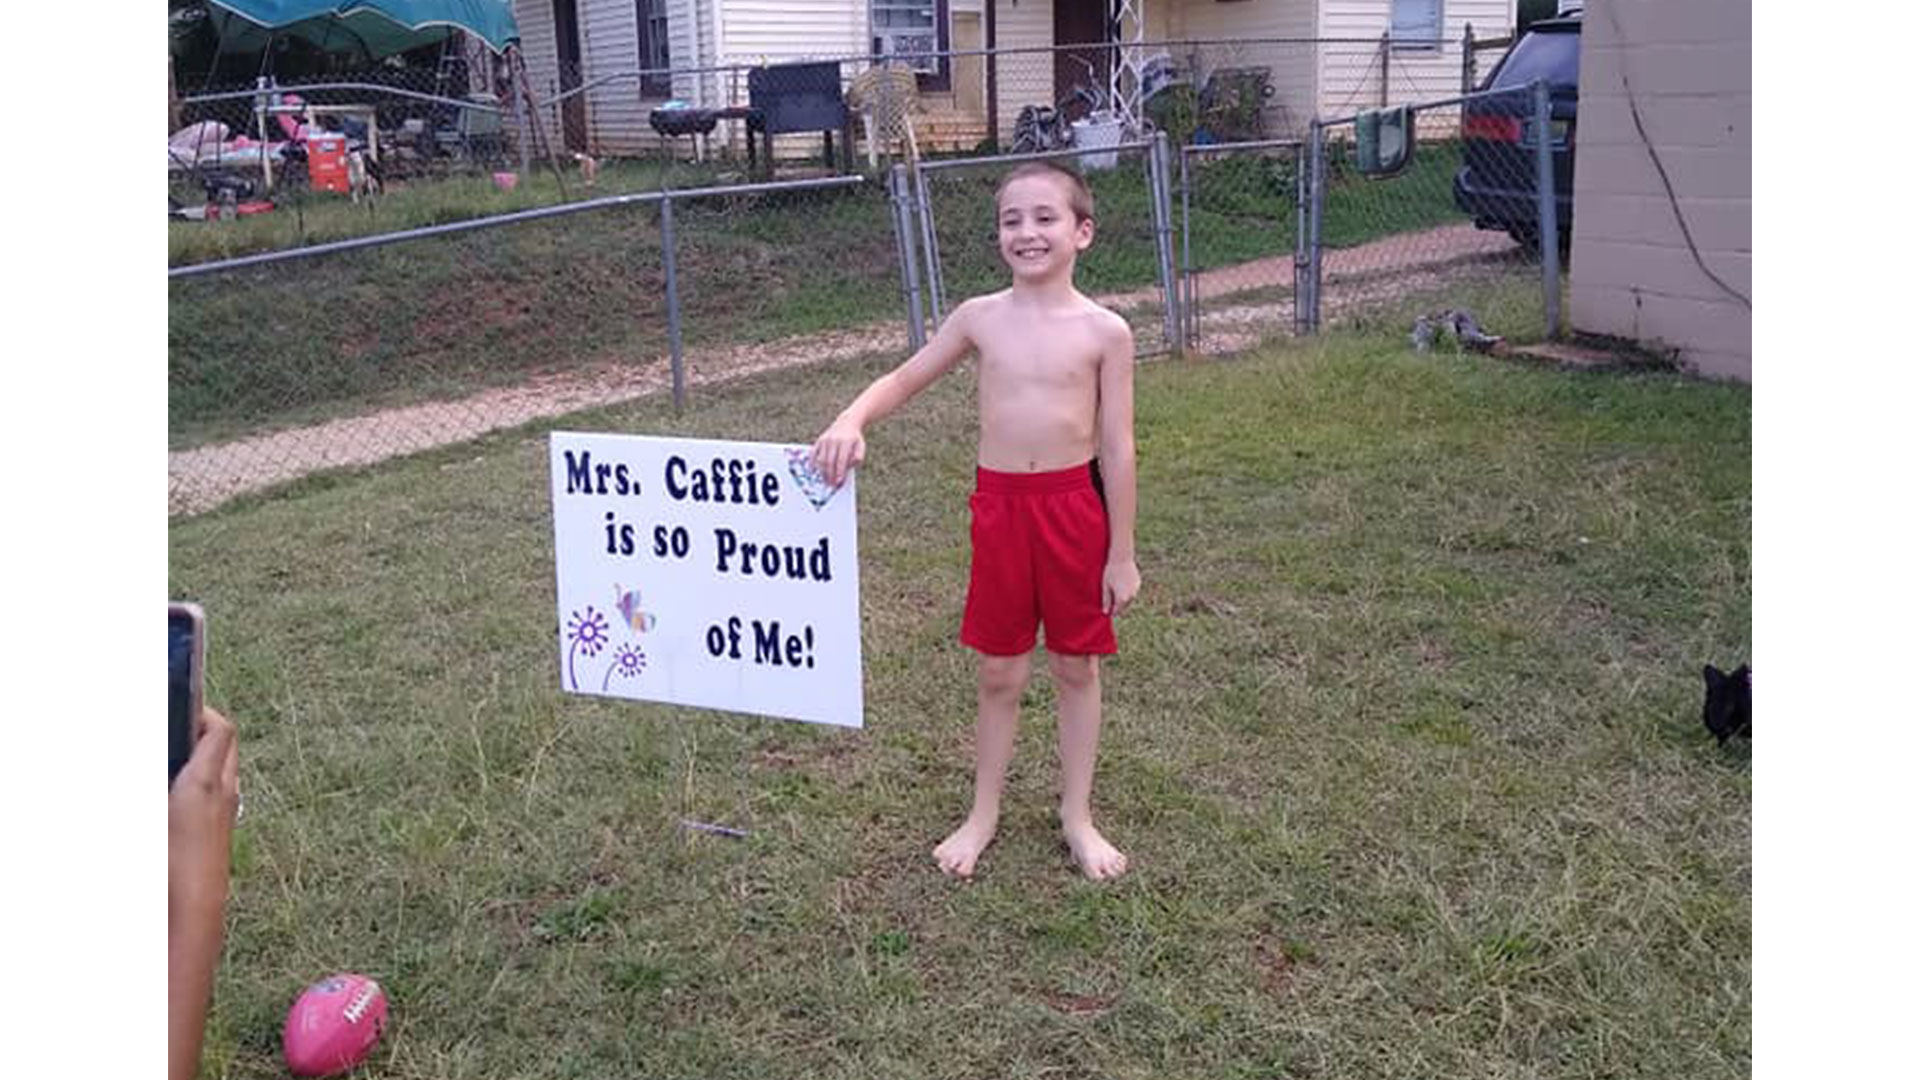 WATCH: When One of Her Third Graders Got a 100 on a Test, This Alabama Teacher Gave Him a Yard Sign